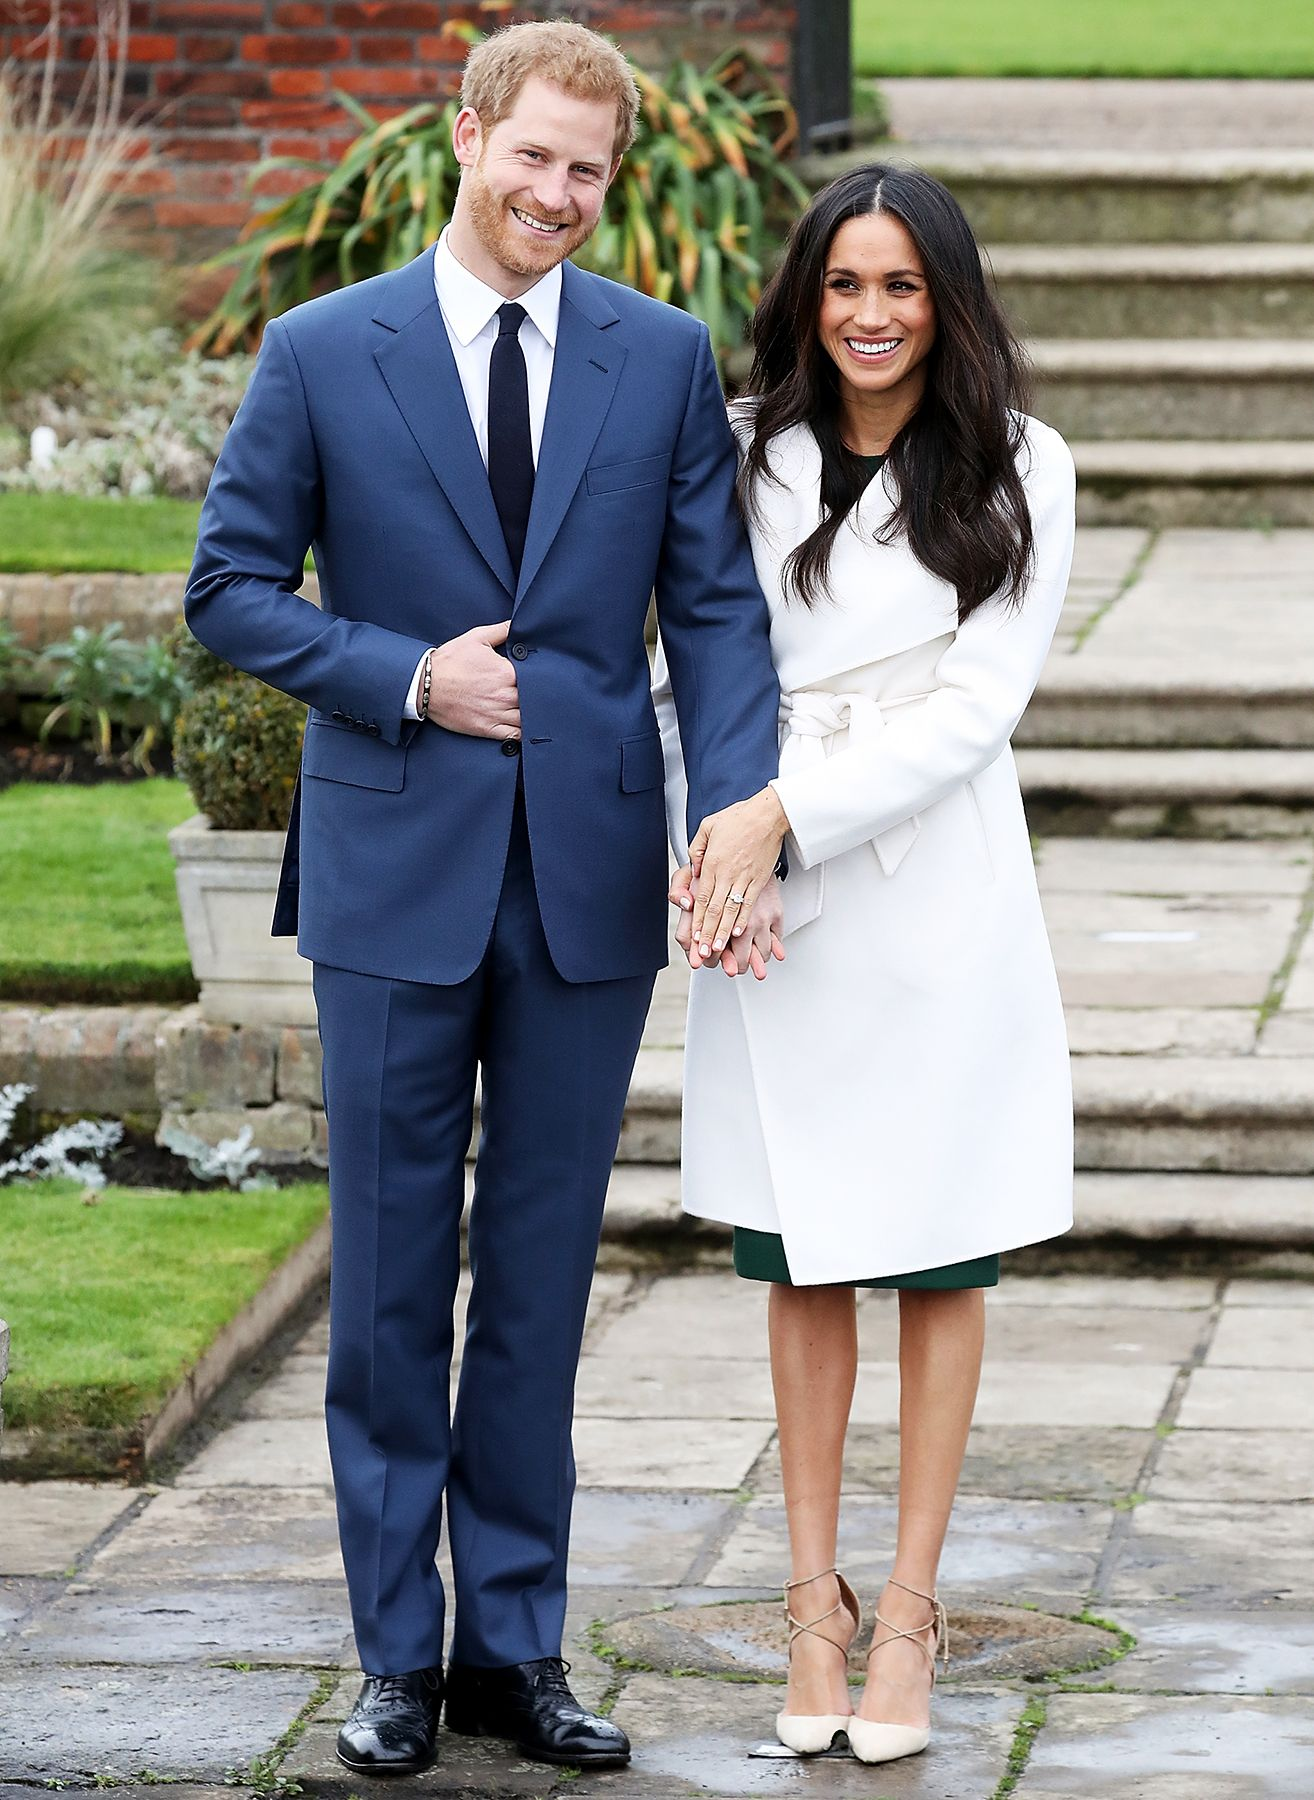 Prince Harry And Meghan Markle Look So In Love At Engagement Photo Call Meghan Markle Stil Meghan Markle Prinz Harry